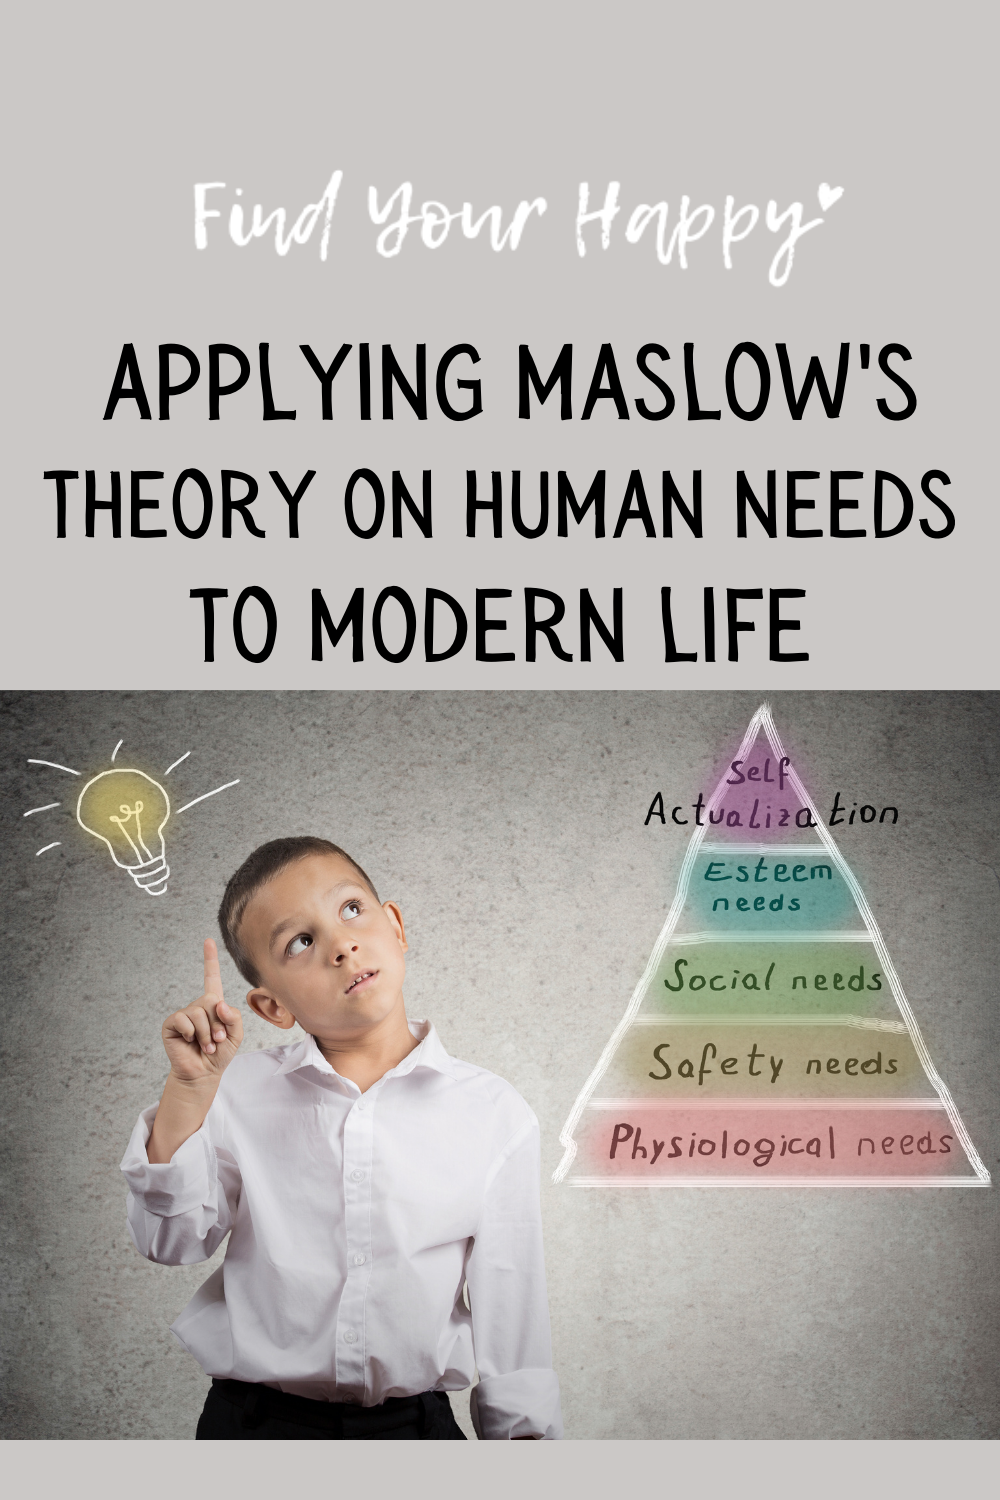 Maslow's theory on human behavior outlined the basic needs all humans share. Meeting these needs is they key to finding happiness.